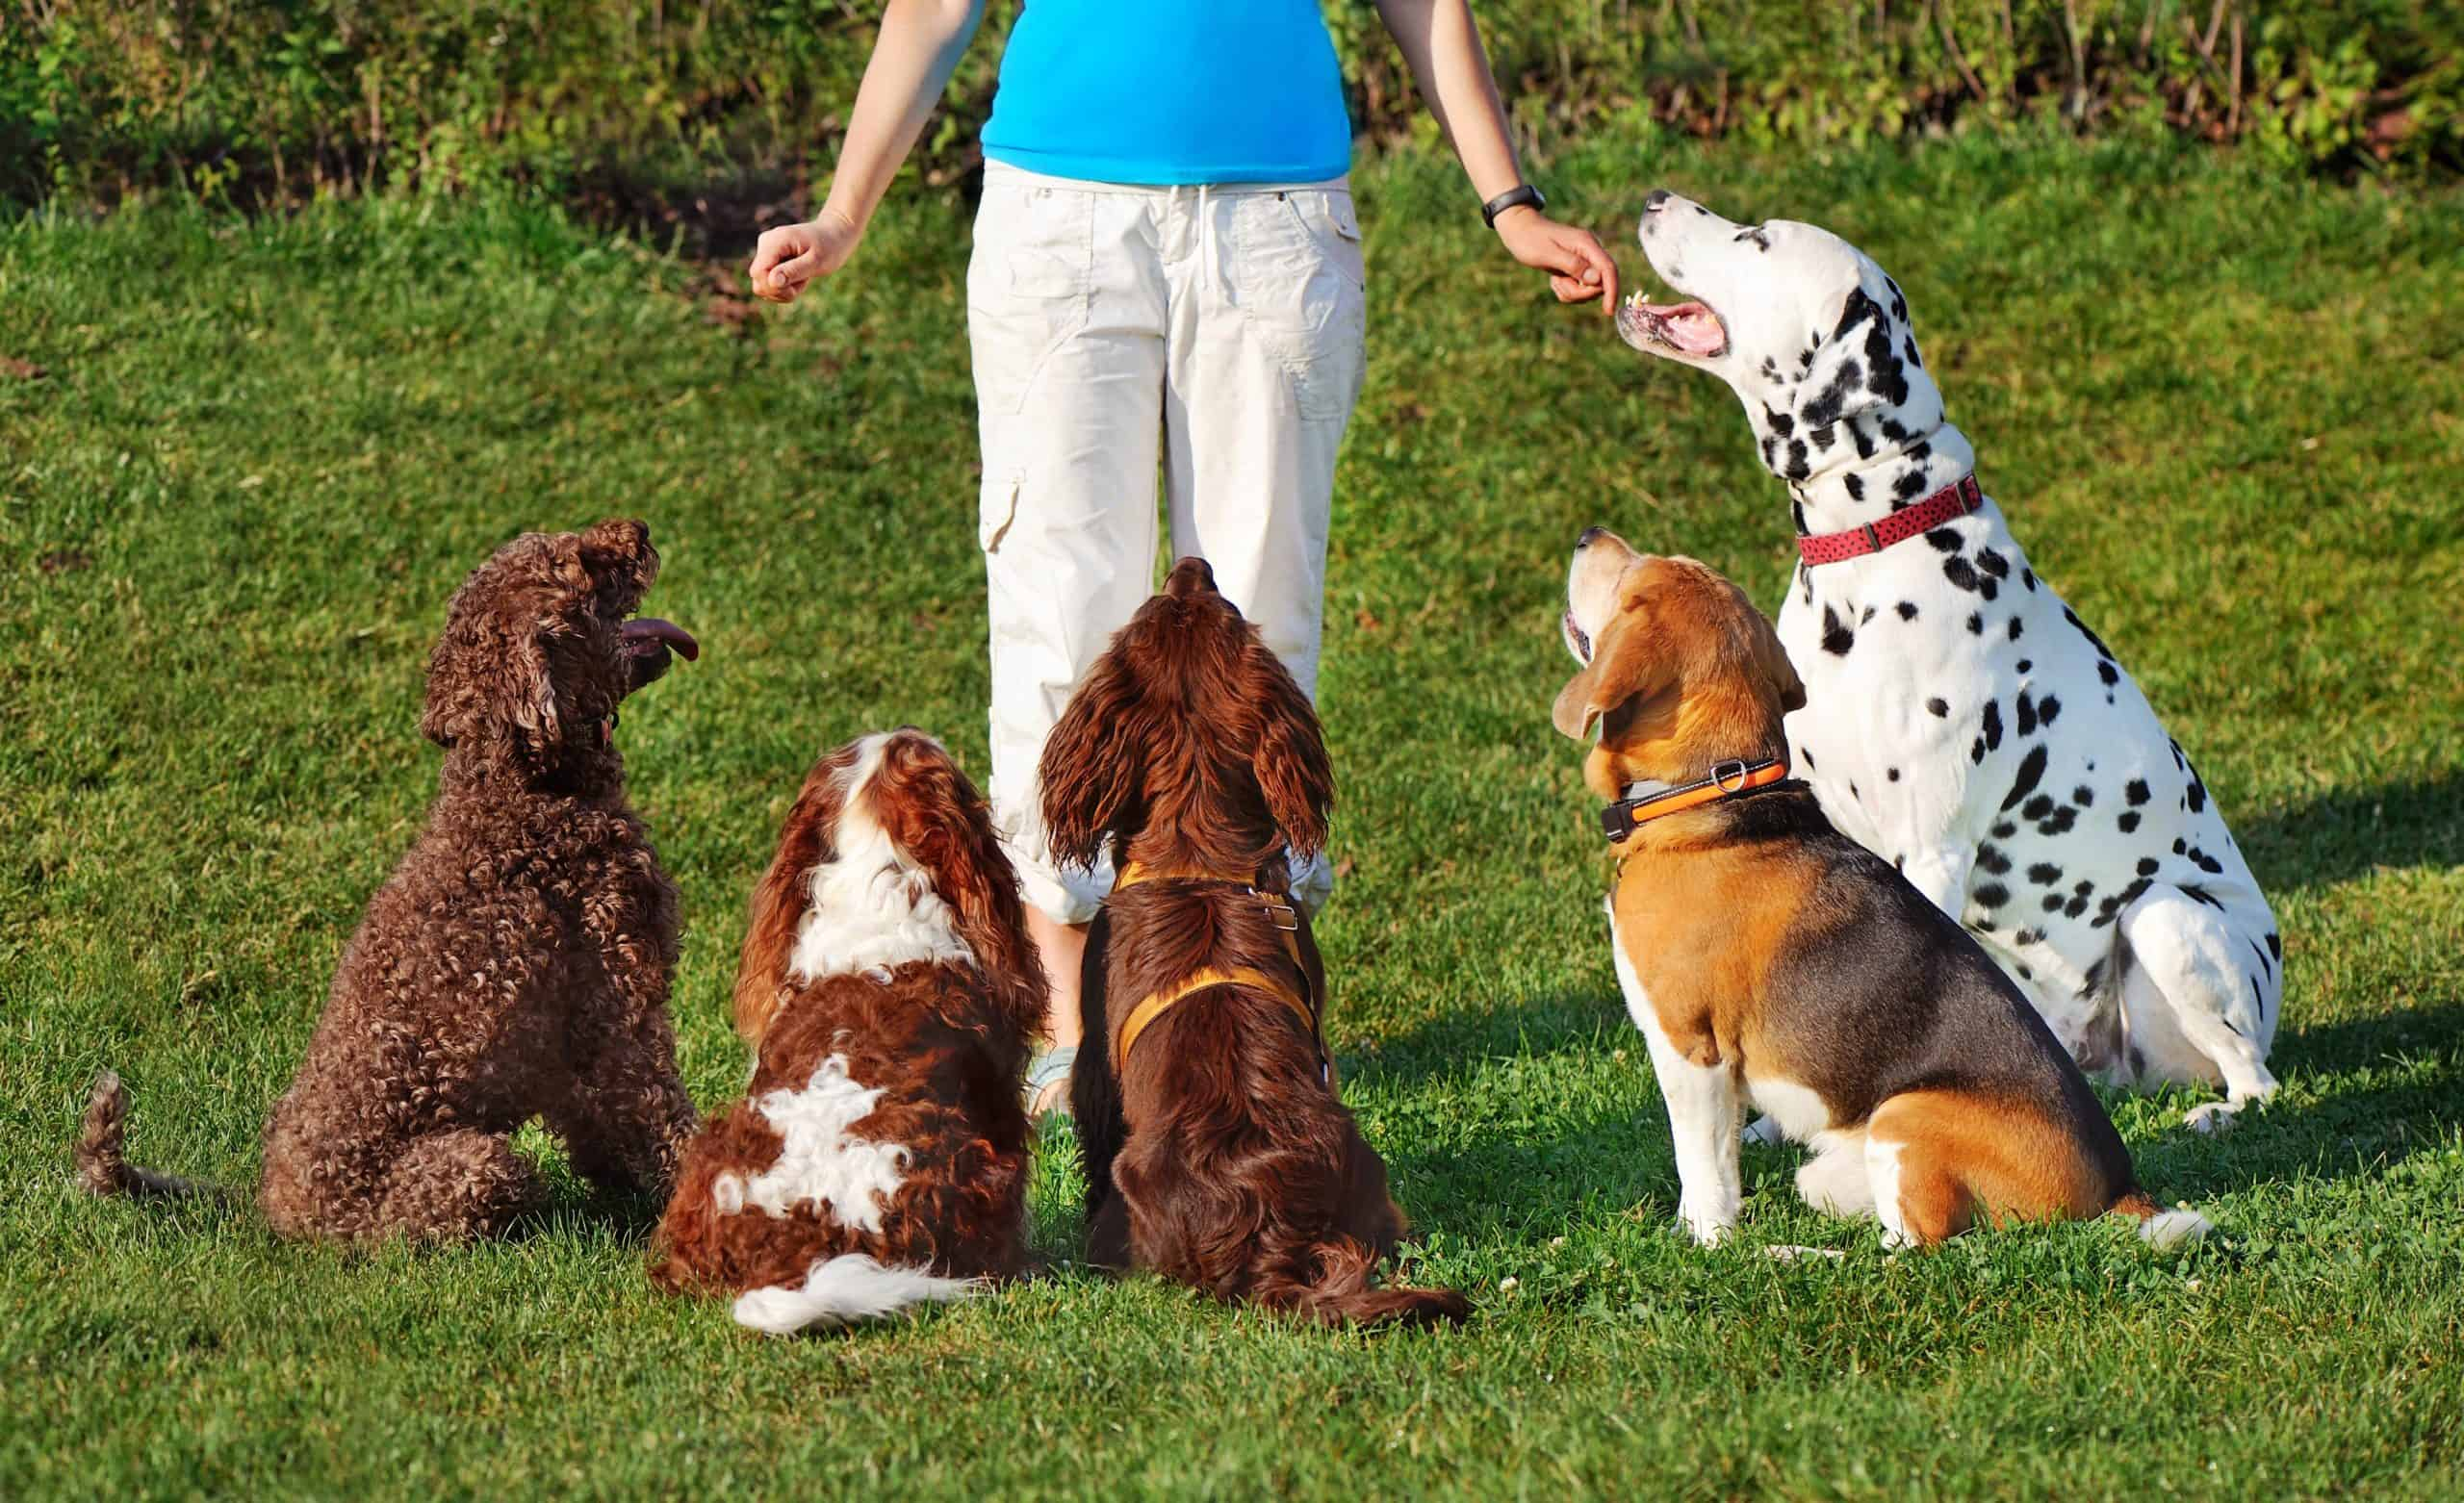 Trainer works with five dogs. Avoid common dog training mistakes like not having enough patience, failing to properly reward your dog, or set a schedule.